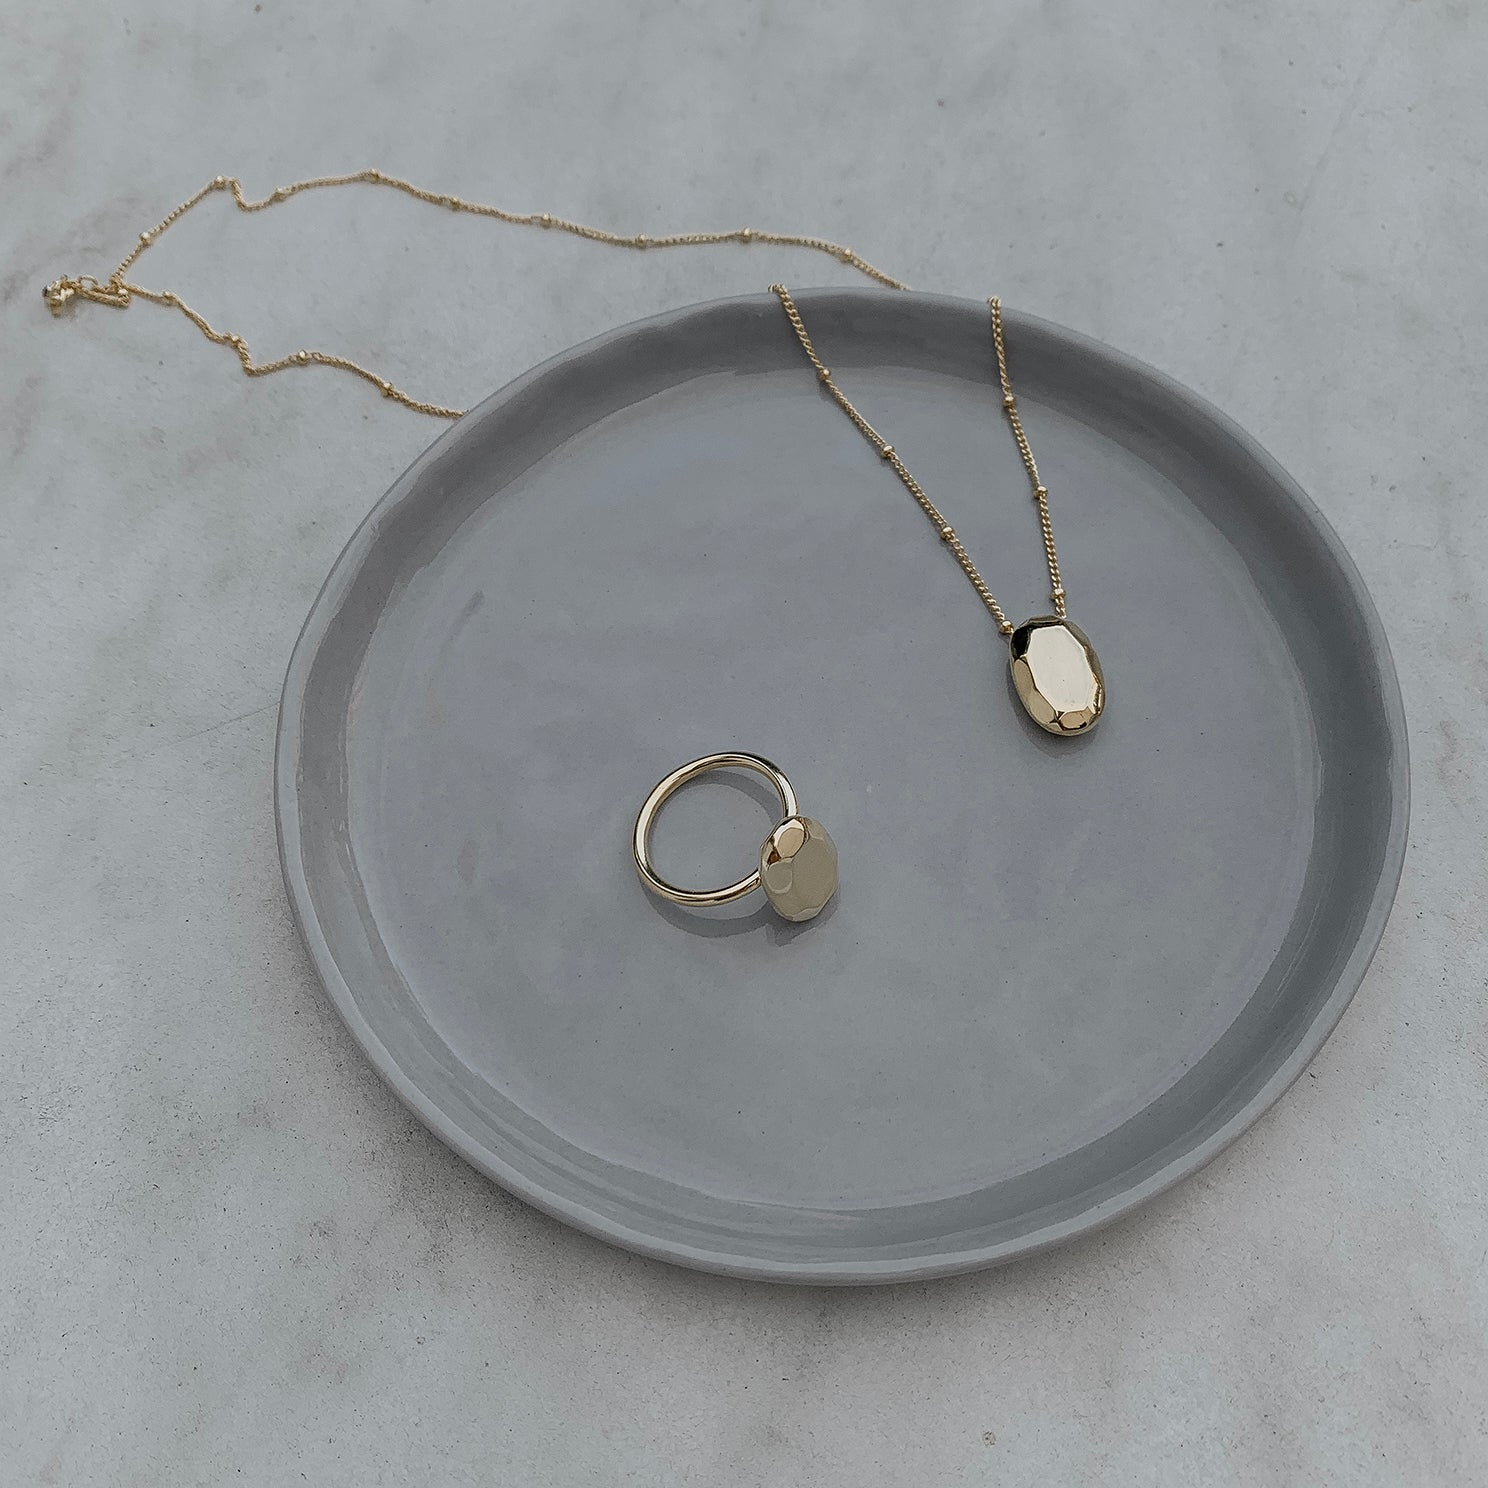 The Oval Pendant